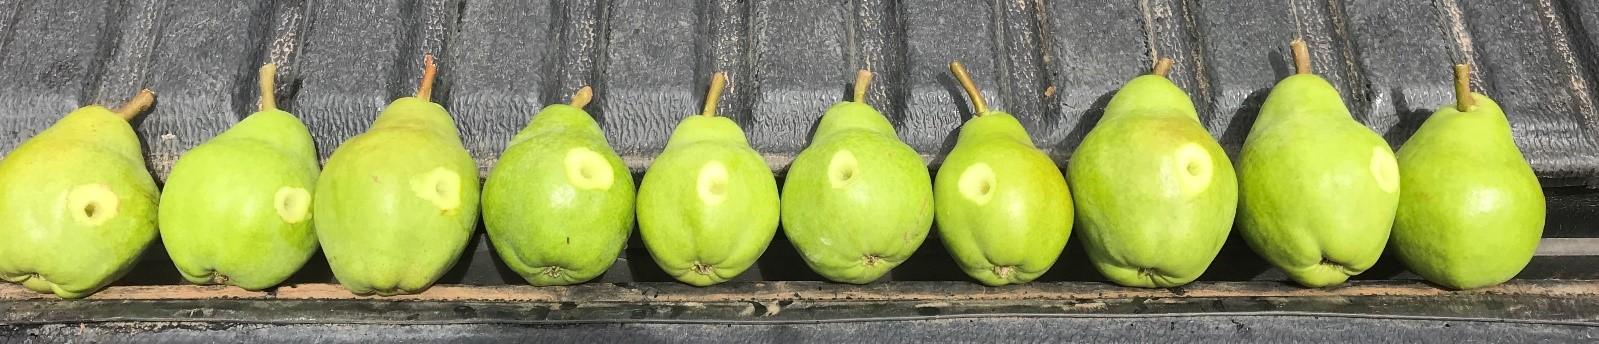 pear maturity test